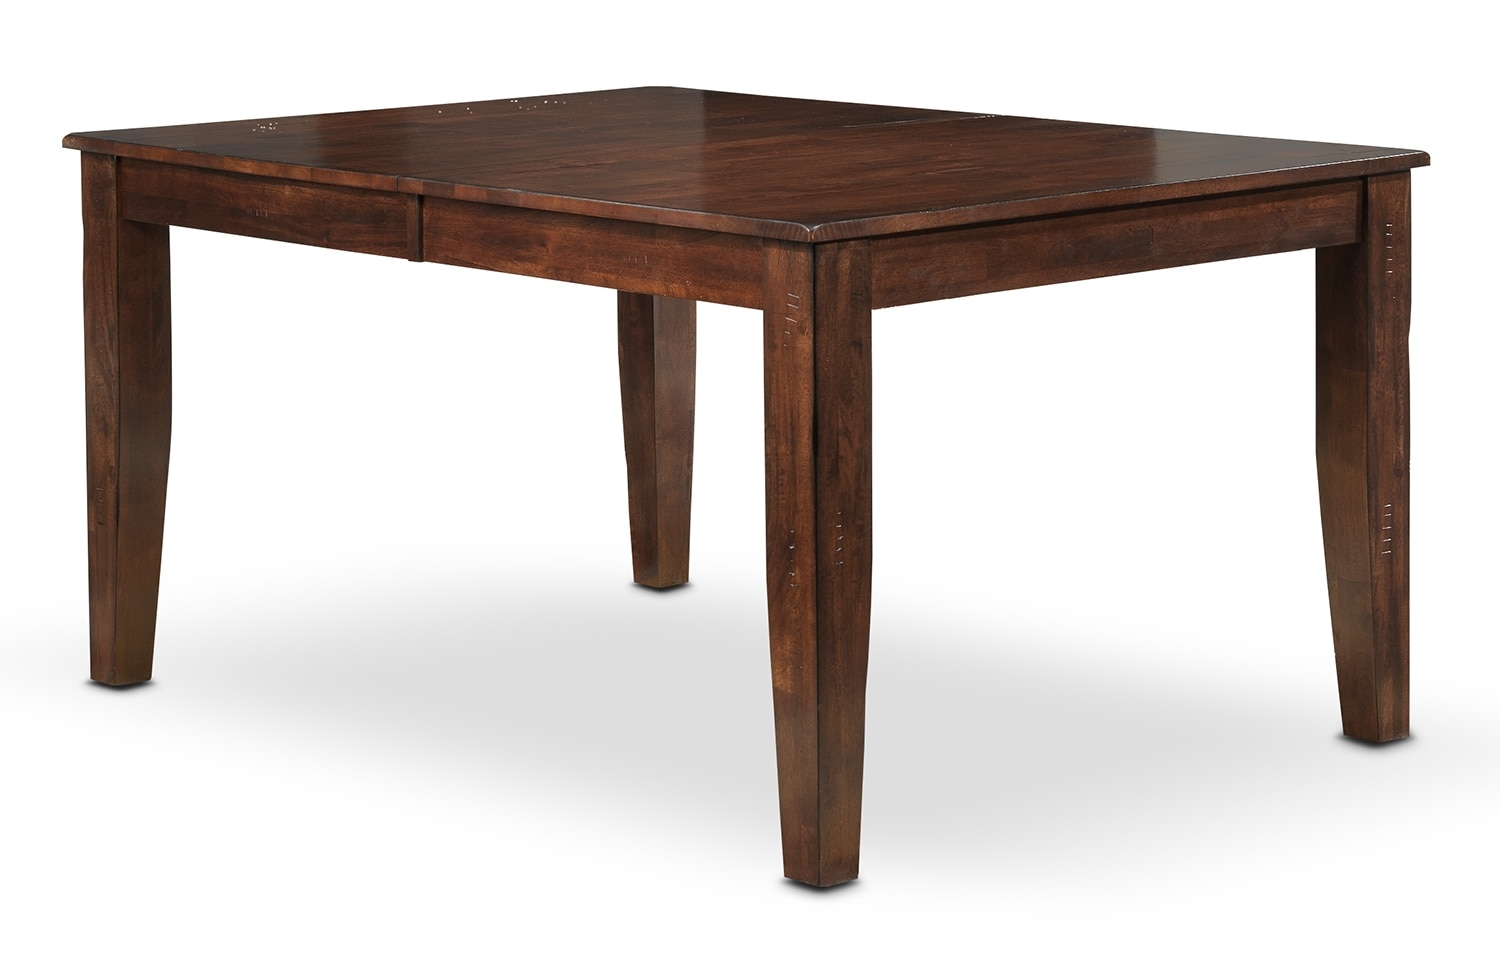 Dining Room Furniture - Kona Table - Dark Oak